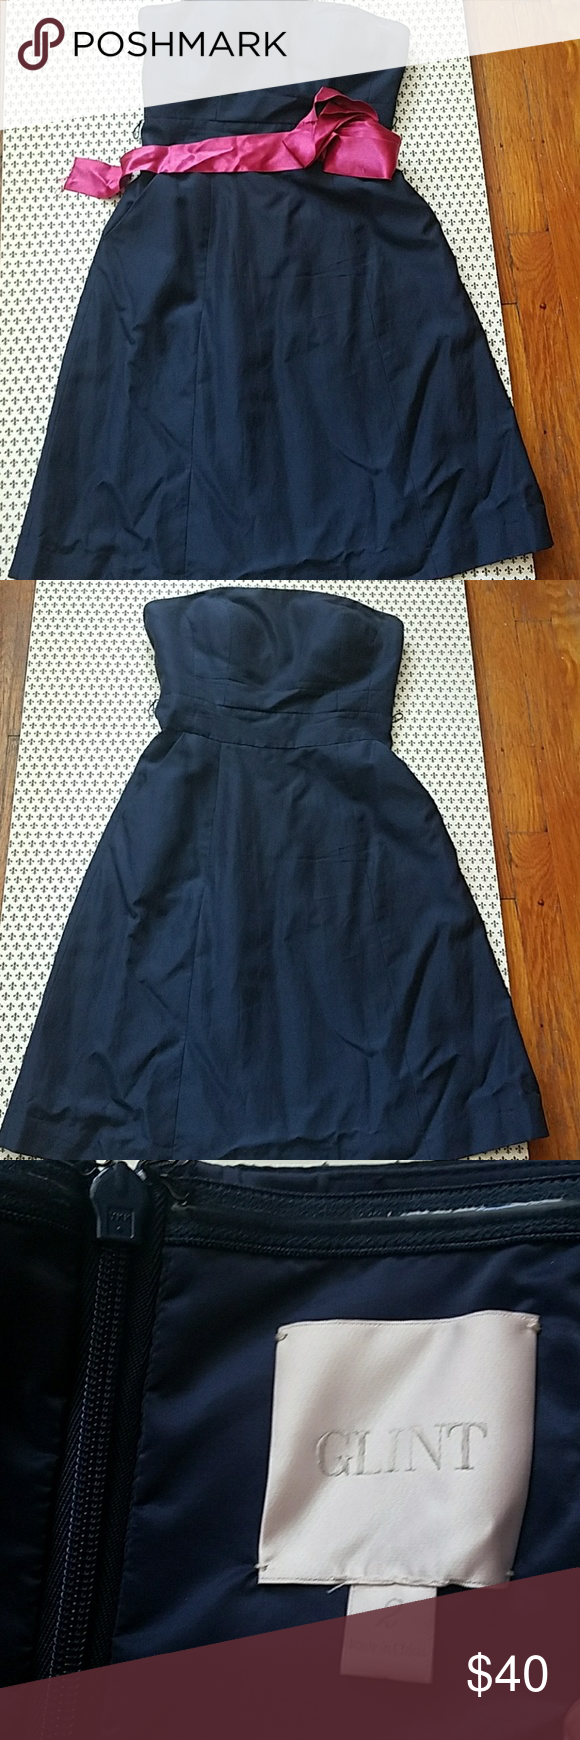 Glint navy strapless dress strapless dress pink ribbons and navy